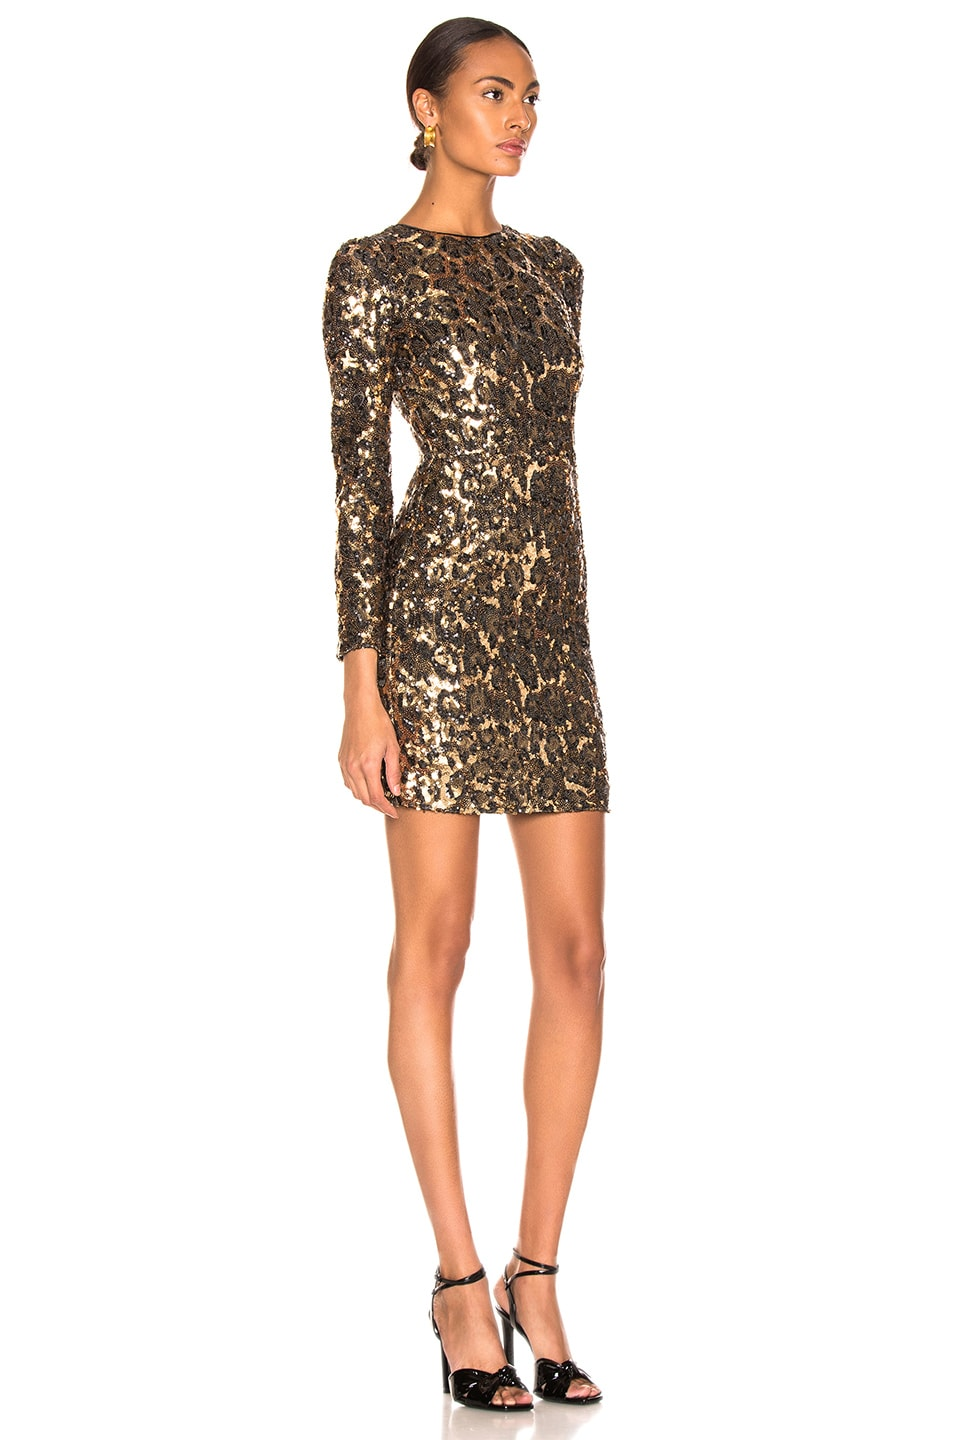 Image 2 of Dolce & Gabbana Leo Print Sequin Long Sleeve Dress in Cheetah